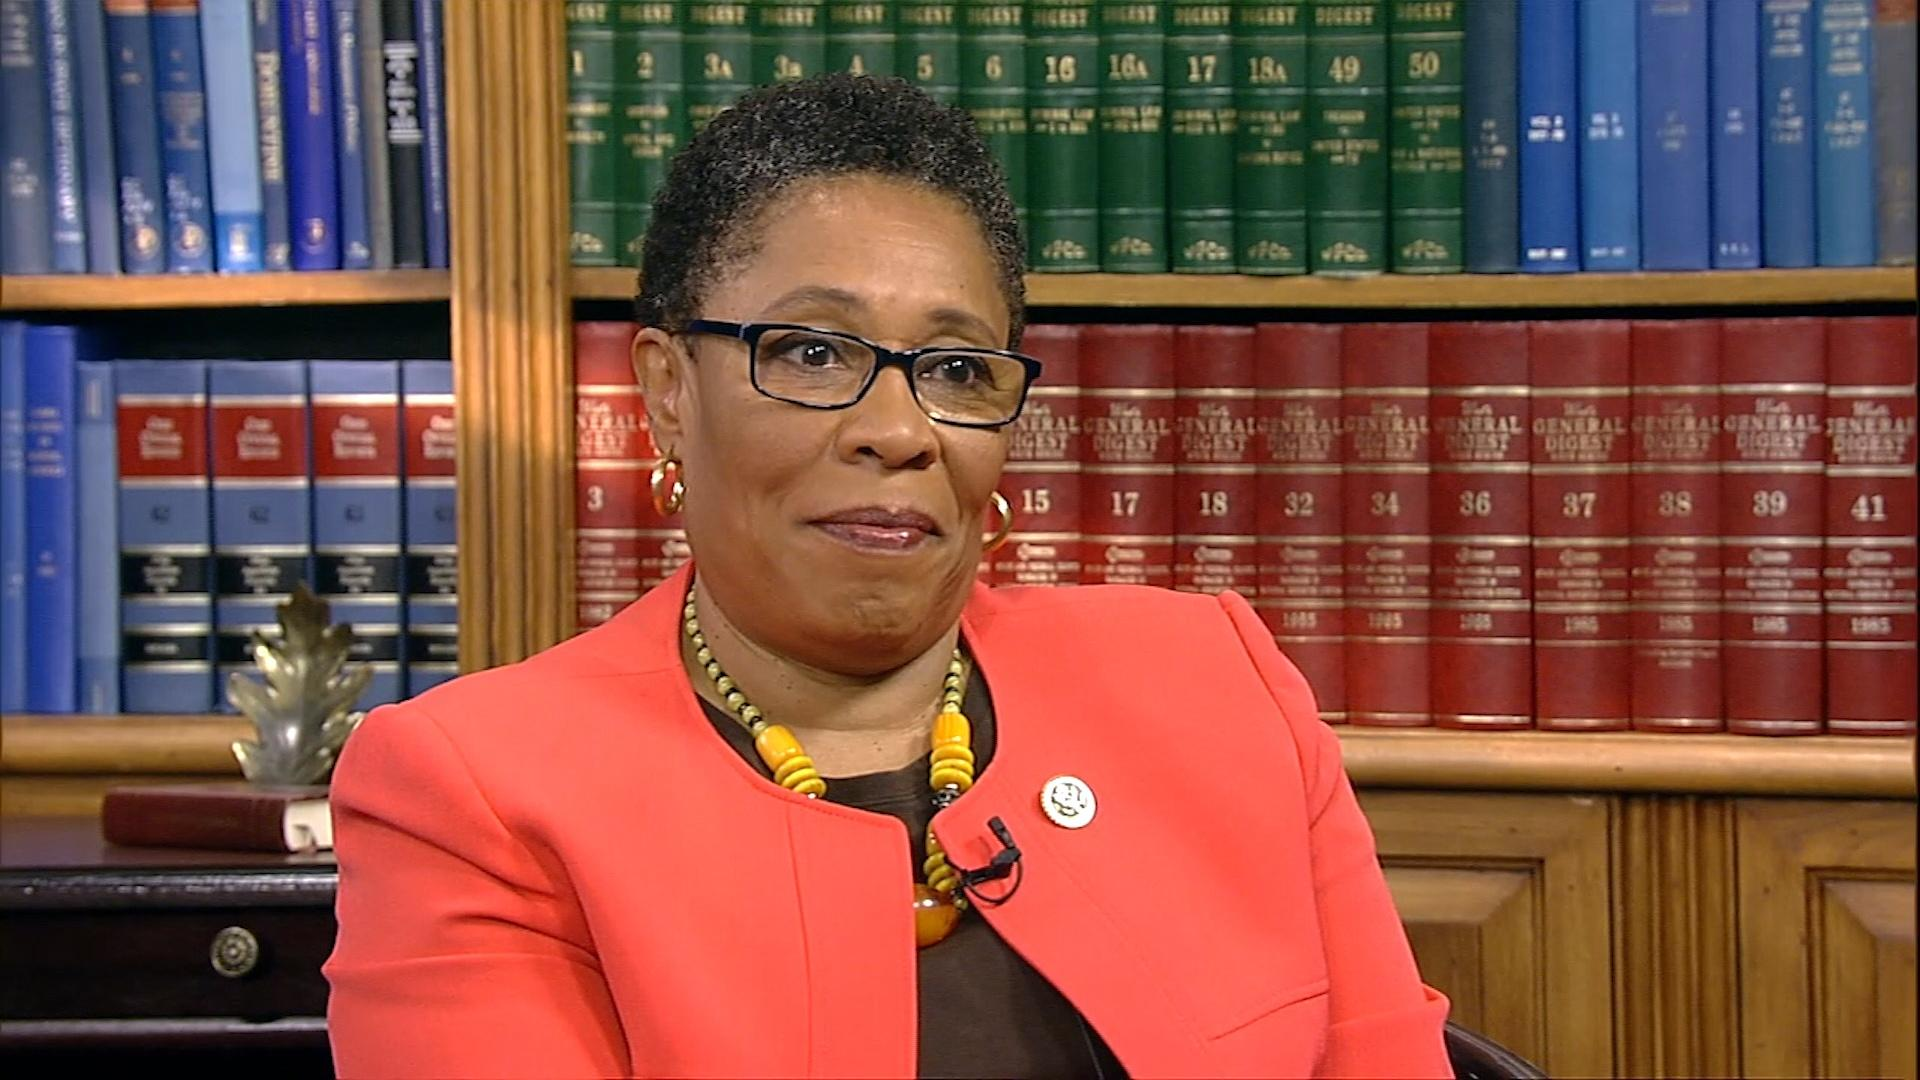 TTC Extra: Rep. Marcia Fudge on Kids' Health & STEM